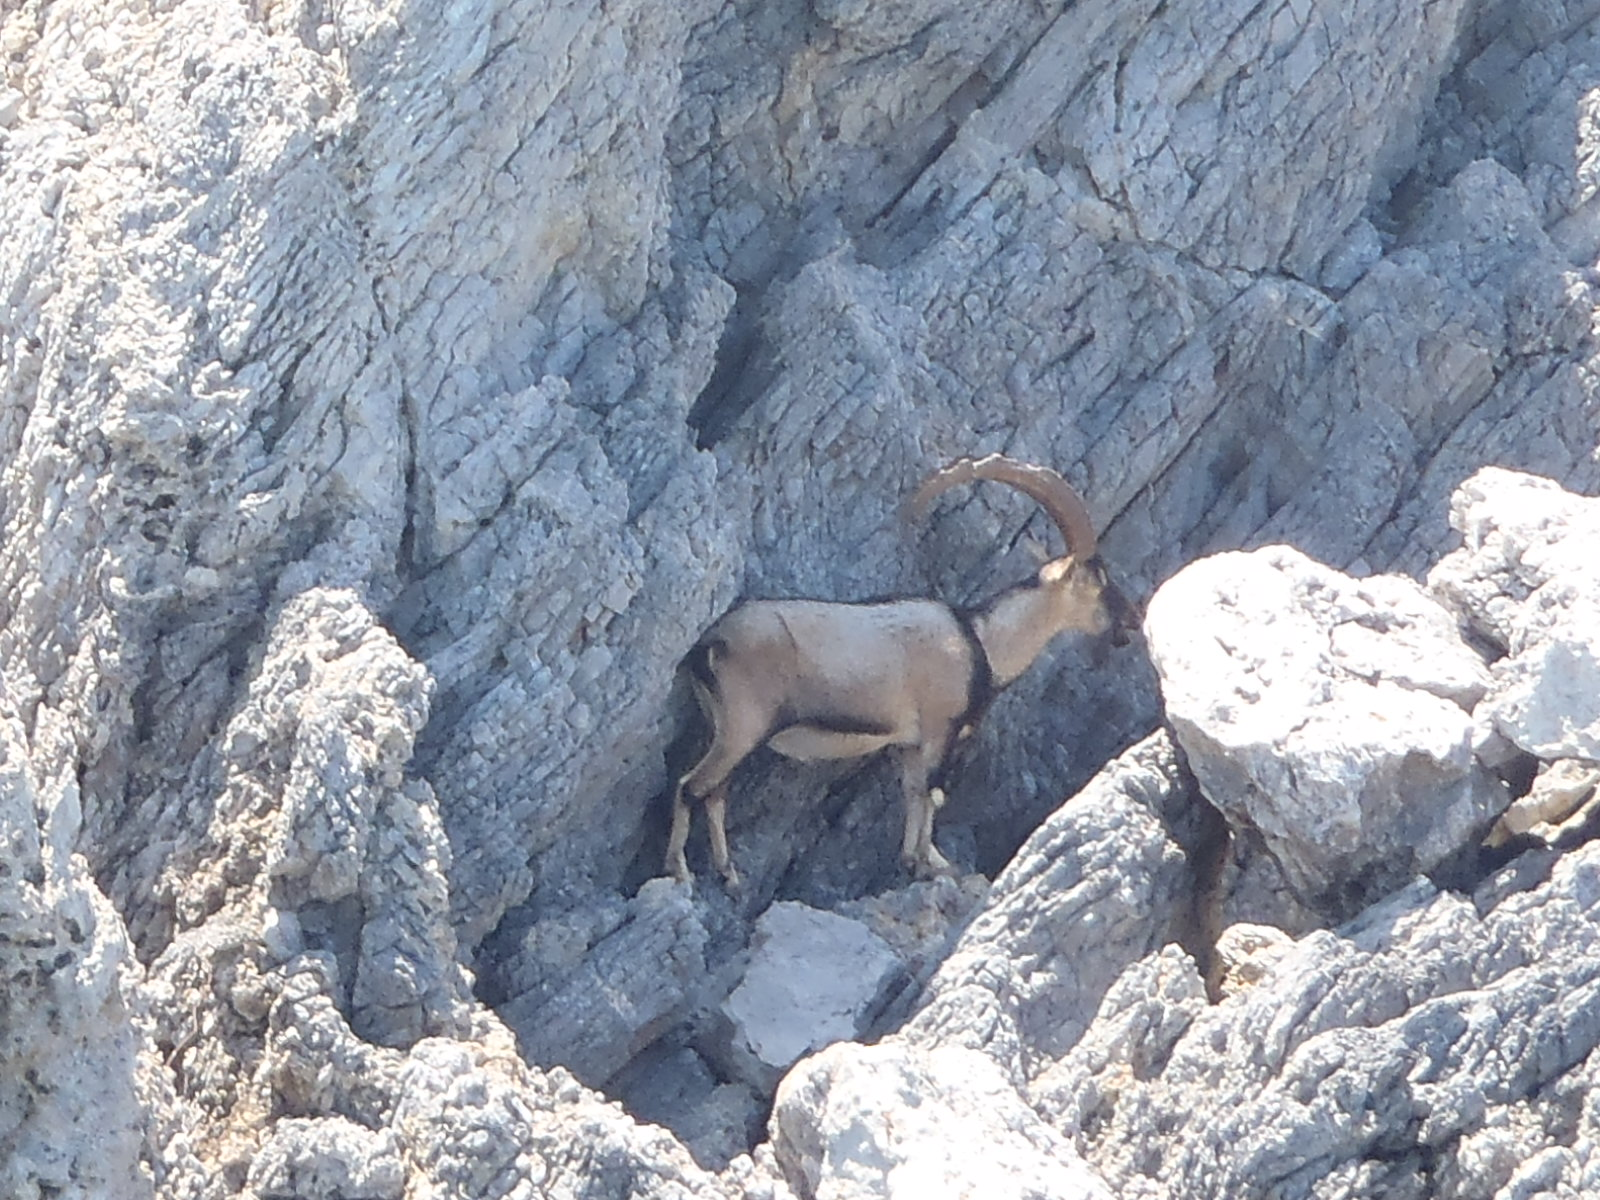 Ram on mountain